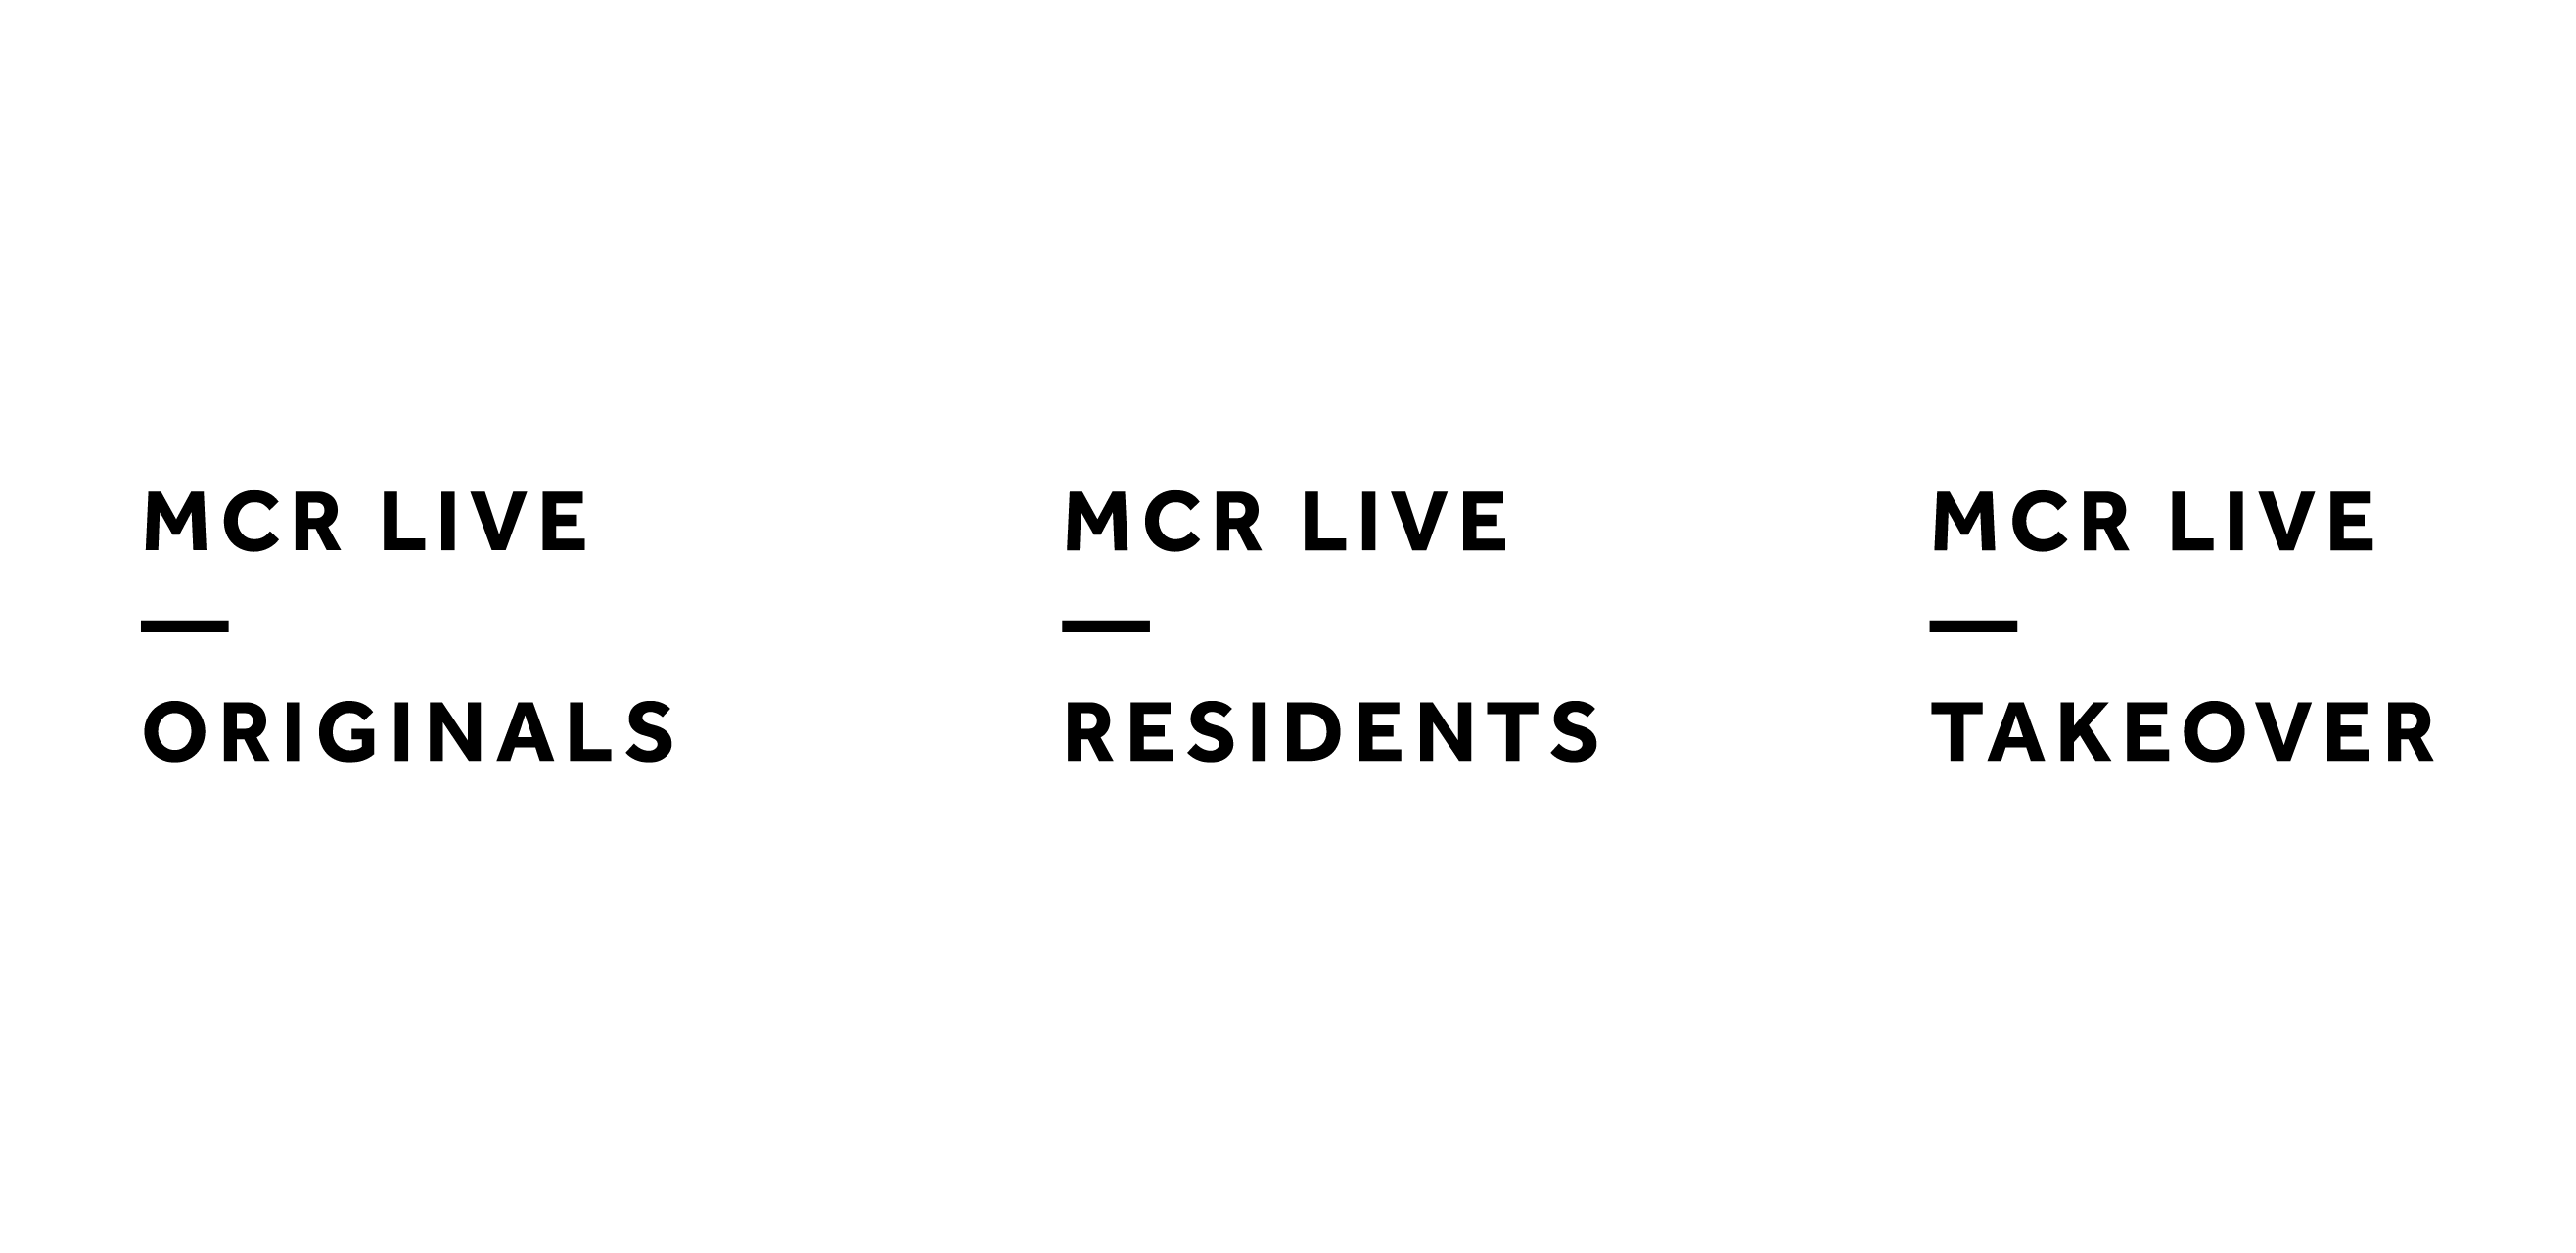 Sub-brands in a similar type treatment as MCR LIVE in its logo for use in promotional graphics, MCR LIVE – ORIGINALS, MCR LIVE – RESIDENTS, MCR LIVE – TAKEOVER.